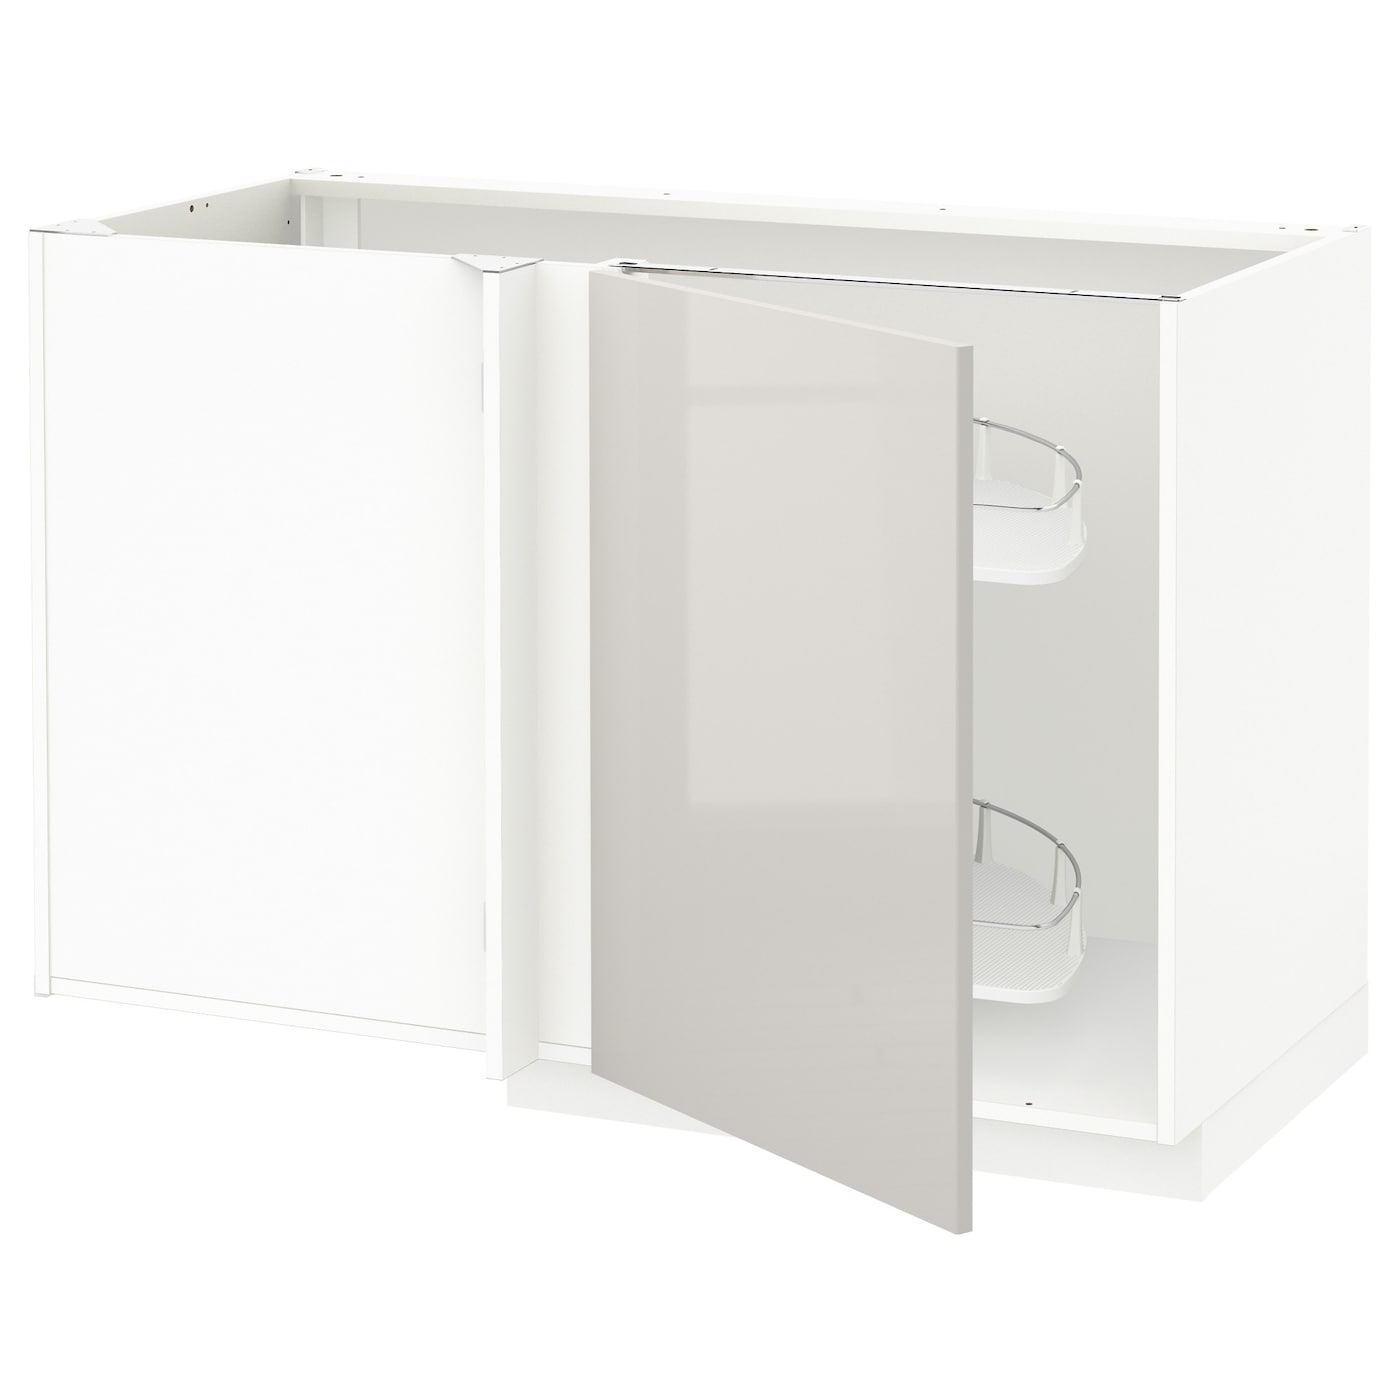 Ringhult Grey Kitchen: METOD Corner Base Cab W Pull-out Fitting White/ringhult